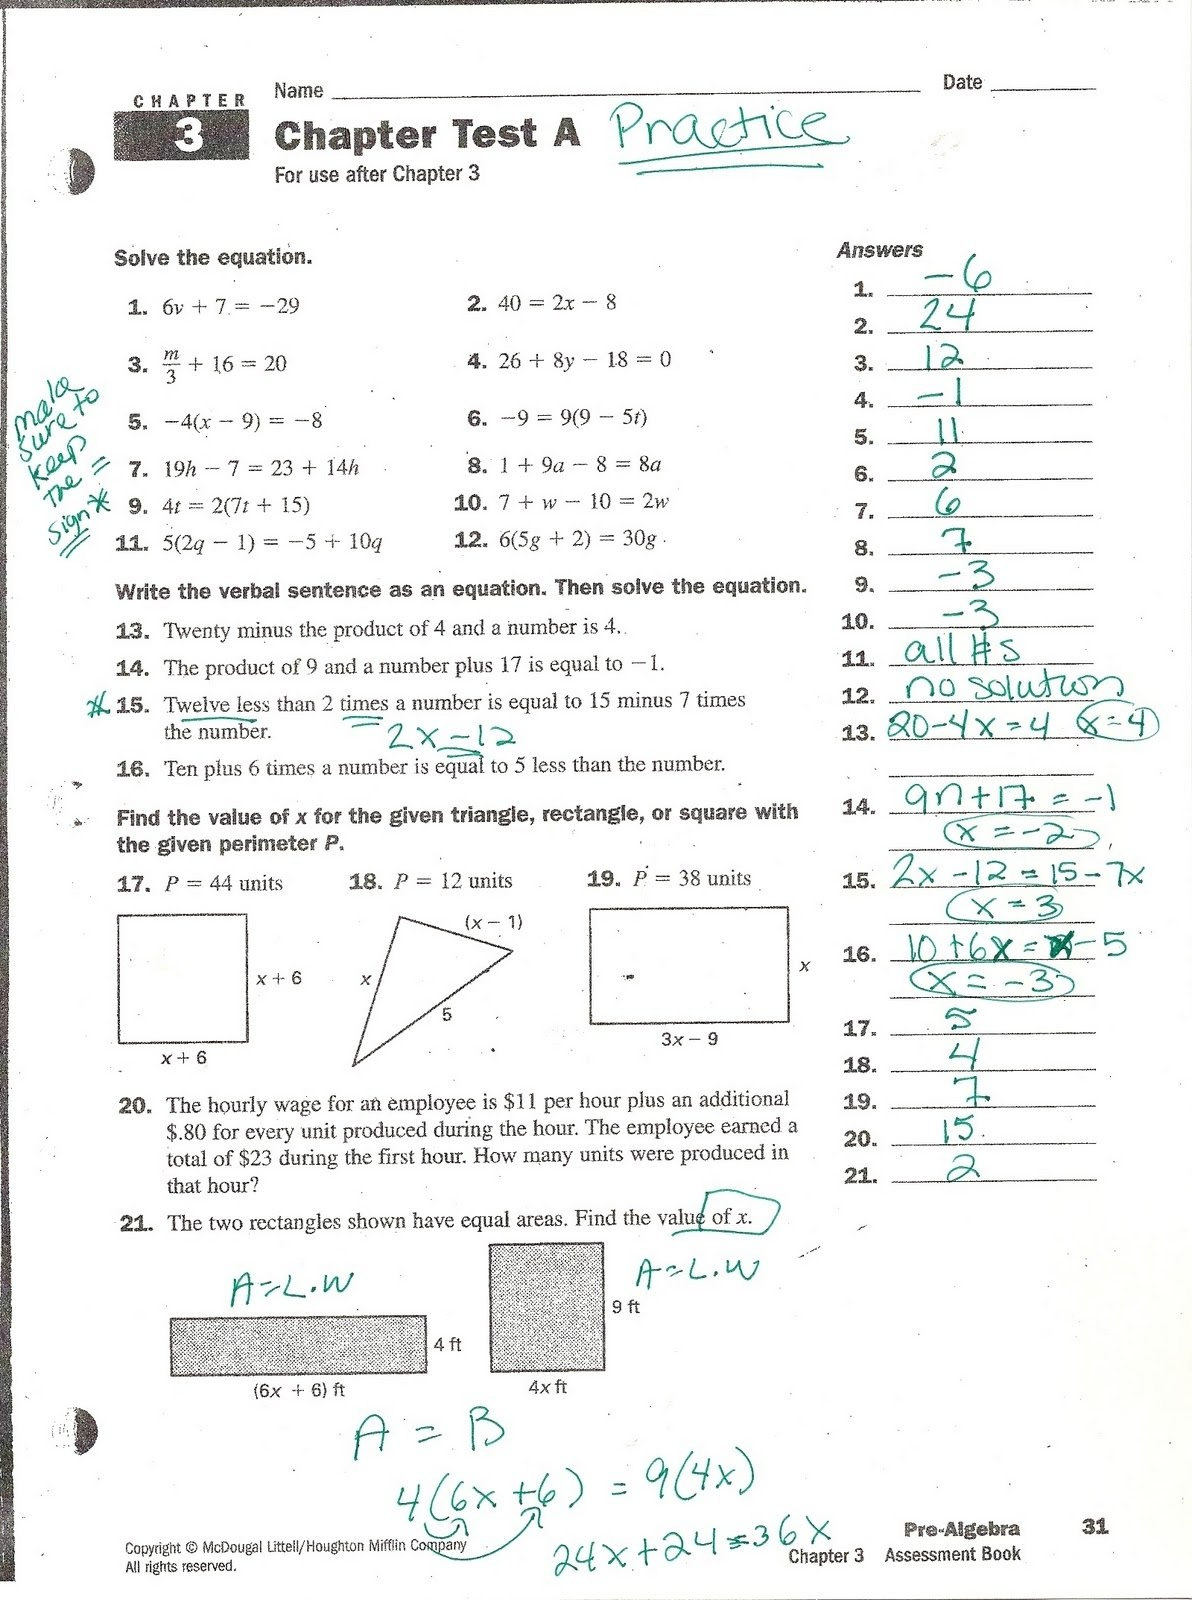 10 Beautiful Big Ideas Math Red Answers mrs whites math class chapter 3 practice problems answers 10